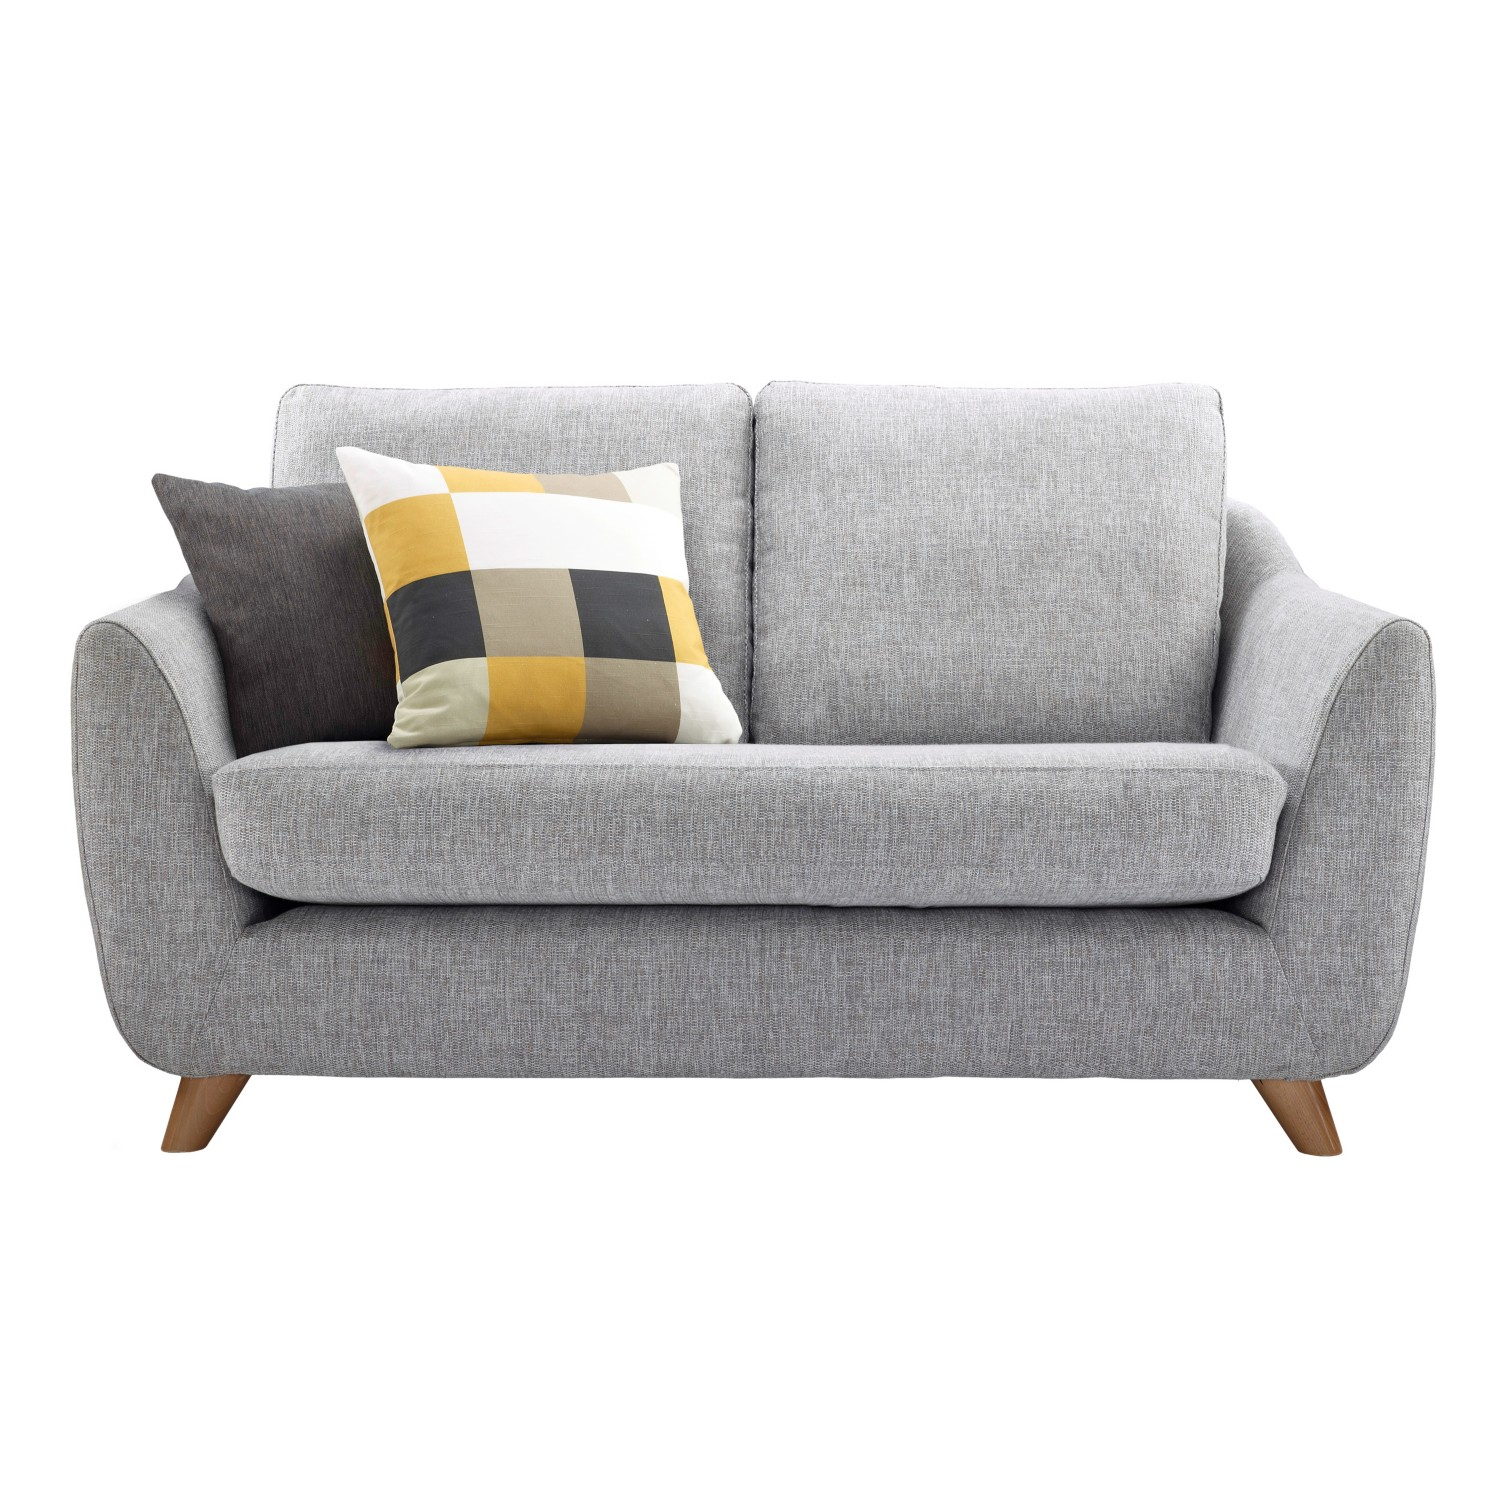 full image for small bedroom sofas 98 small sofa beds toronto loveseats for QMFNMQF